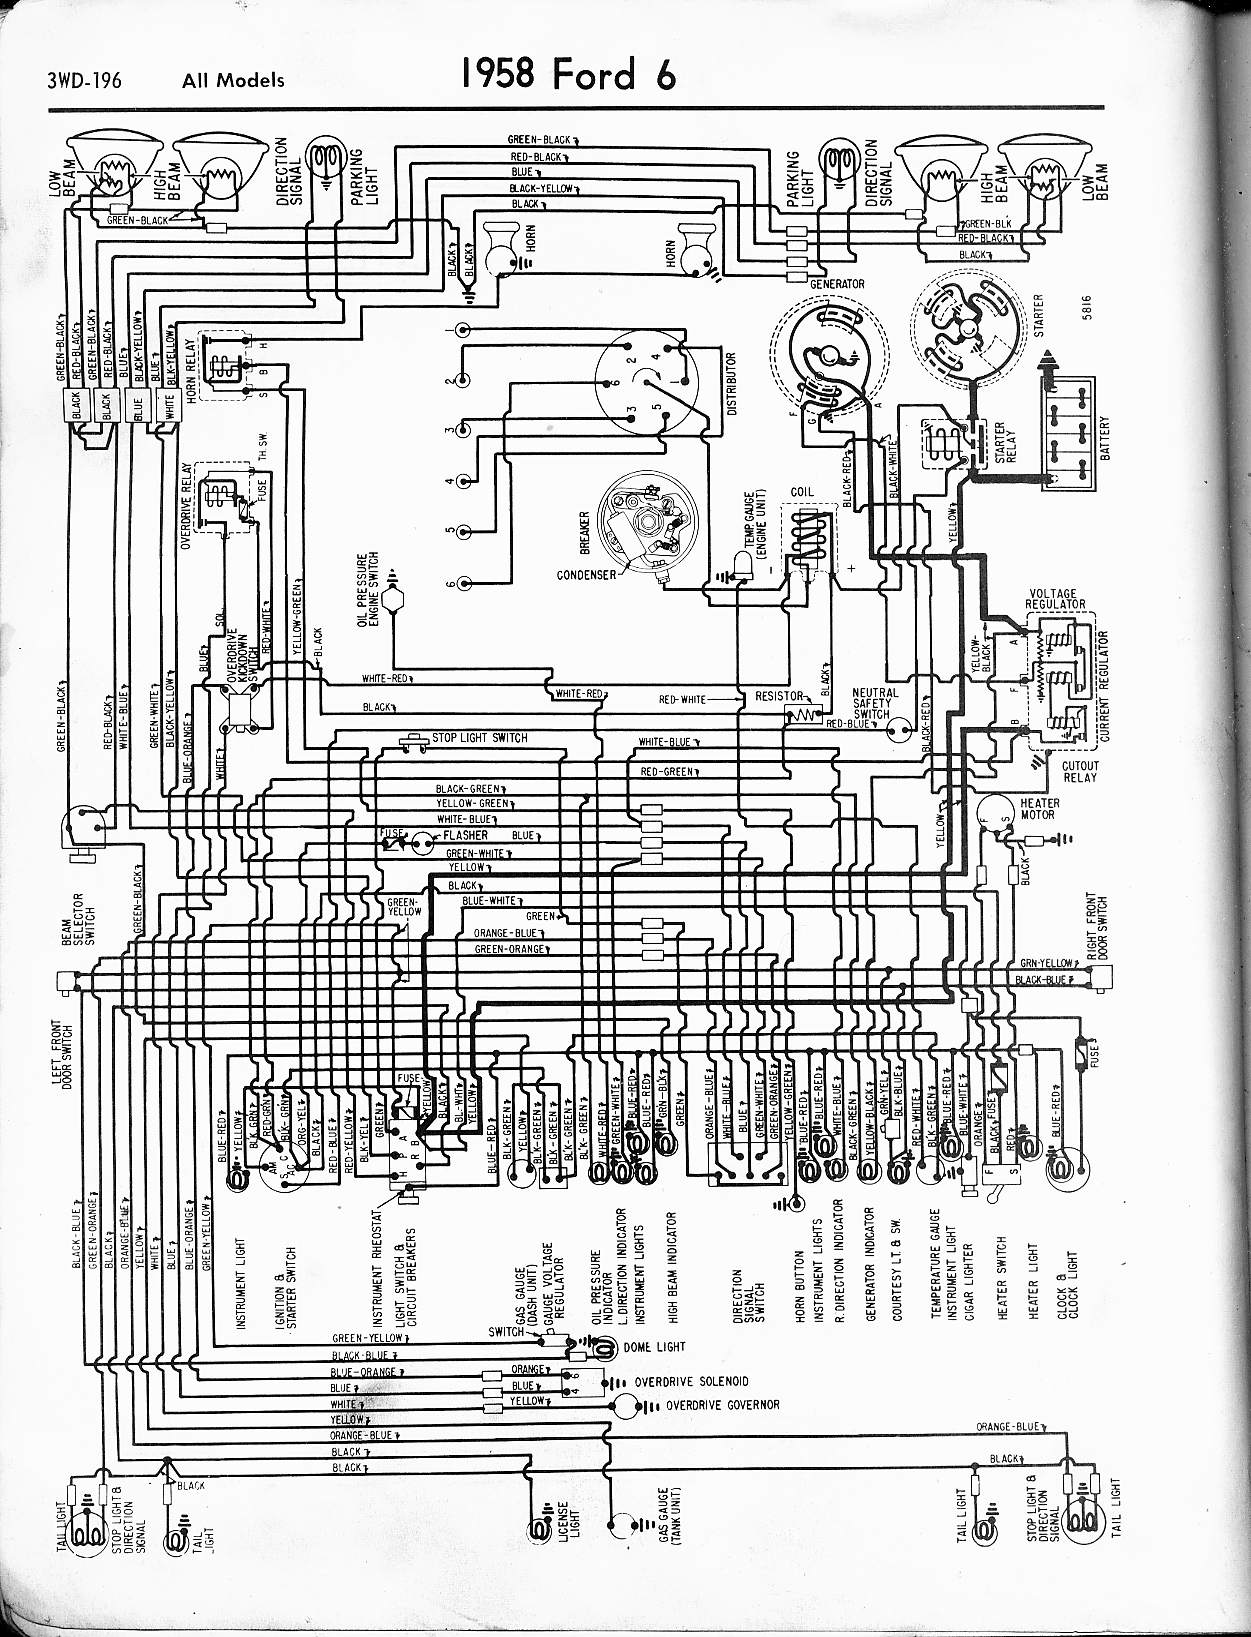 ford wiring manuals wiring diagram schematics57 65 ford wiring diagrams ford shop manuals 1958 6 cyl all models